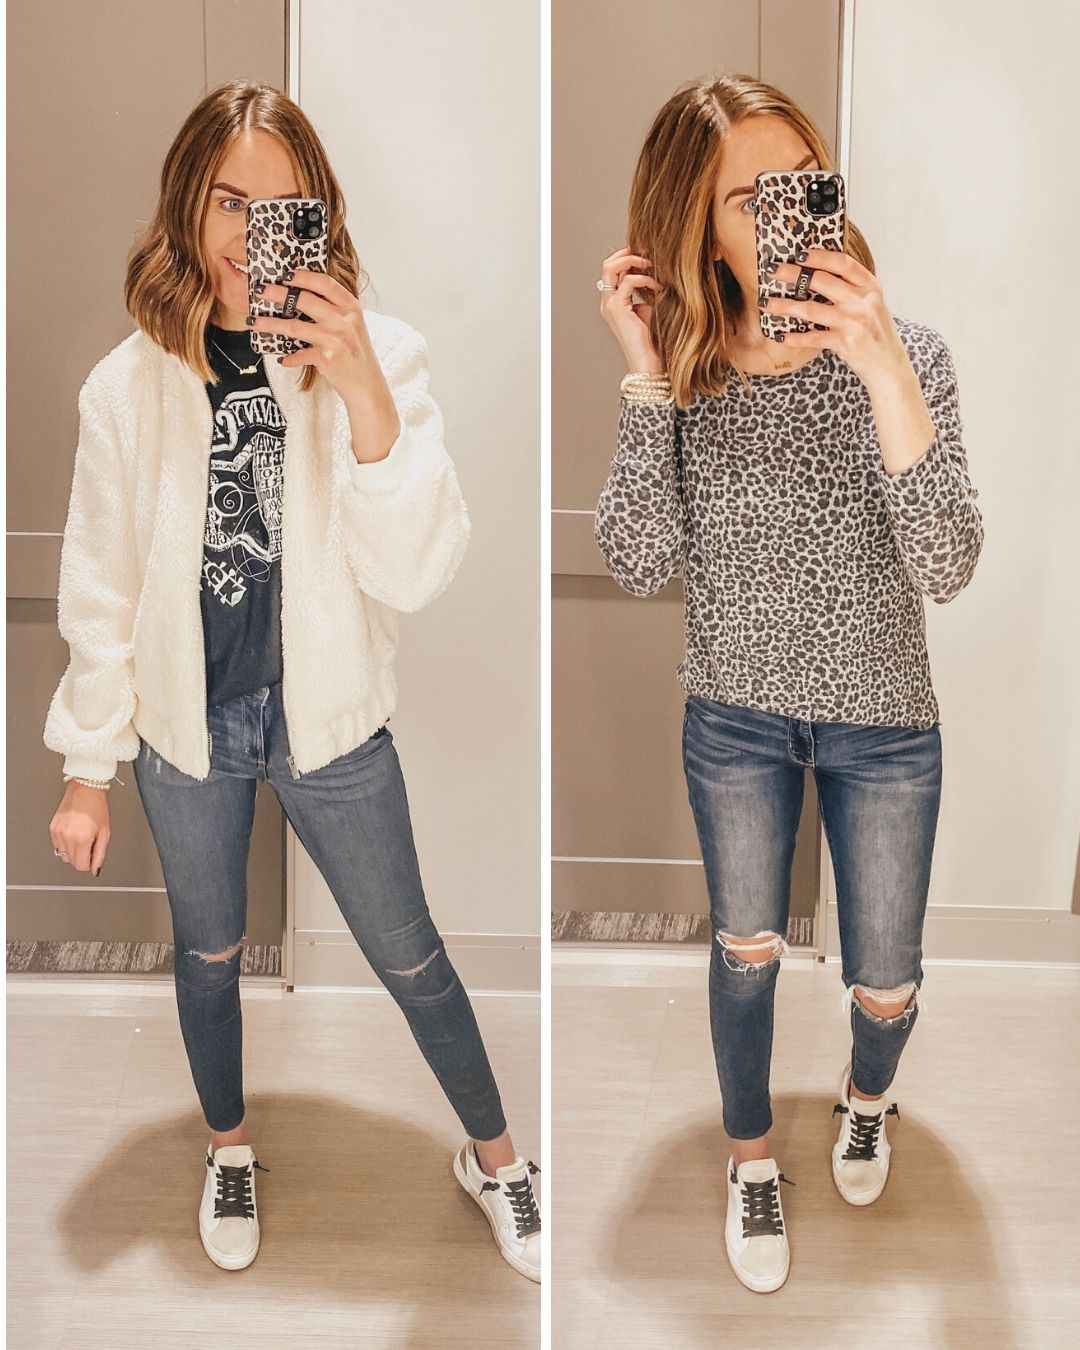 Target Casual outfits, holiday outfits, winter outfits, gift guide